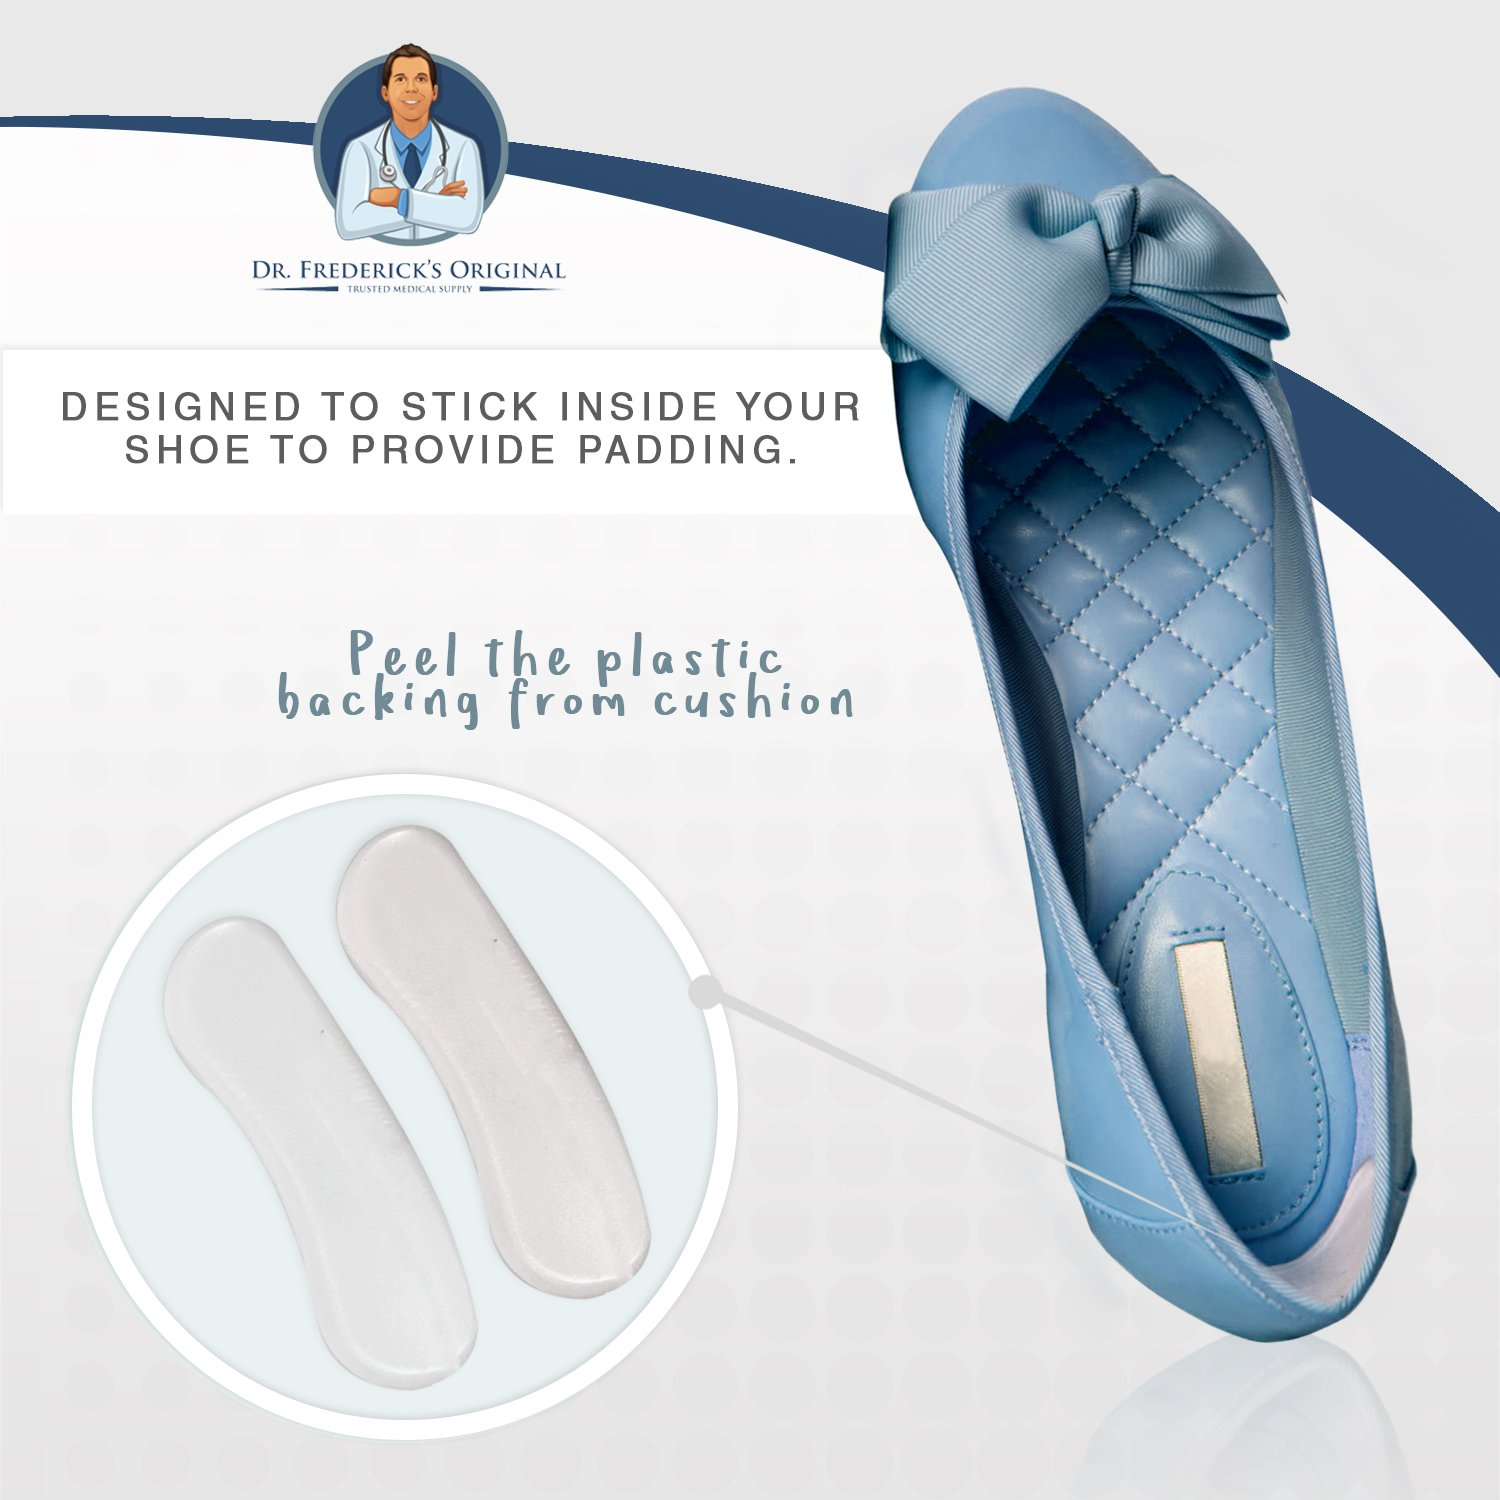 Dr. Frederick's Original Protective & Flexible Heel Grips Set - 10 Pieces - Adhesive Gel Heel Protectors to Prevent Blisters & Cuts - Heel Cushion Set for High Heels, Dress Shoes, Slip-Ons, and More by Dr. Frederick's Original (Image #7)